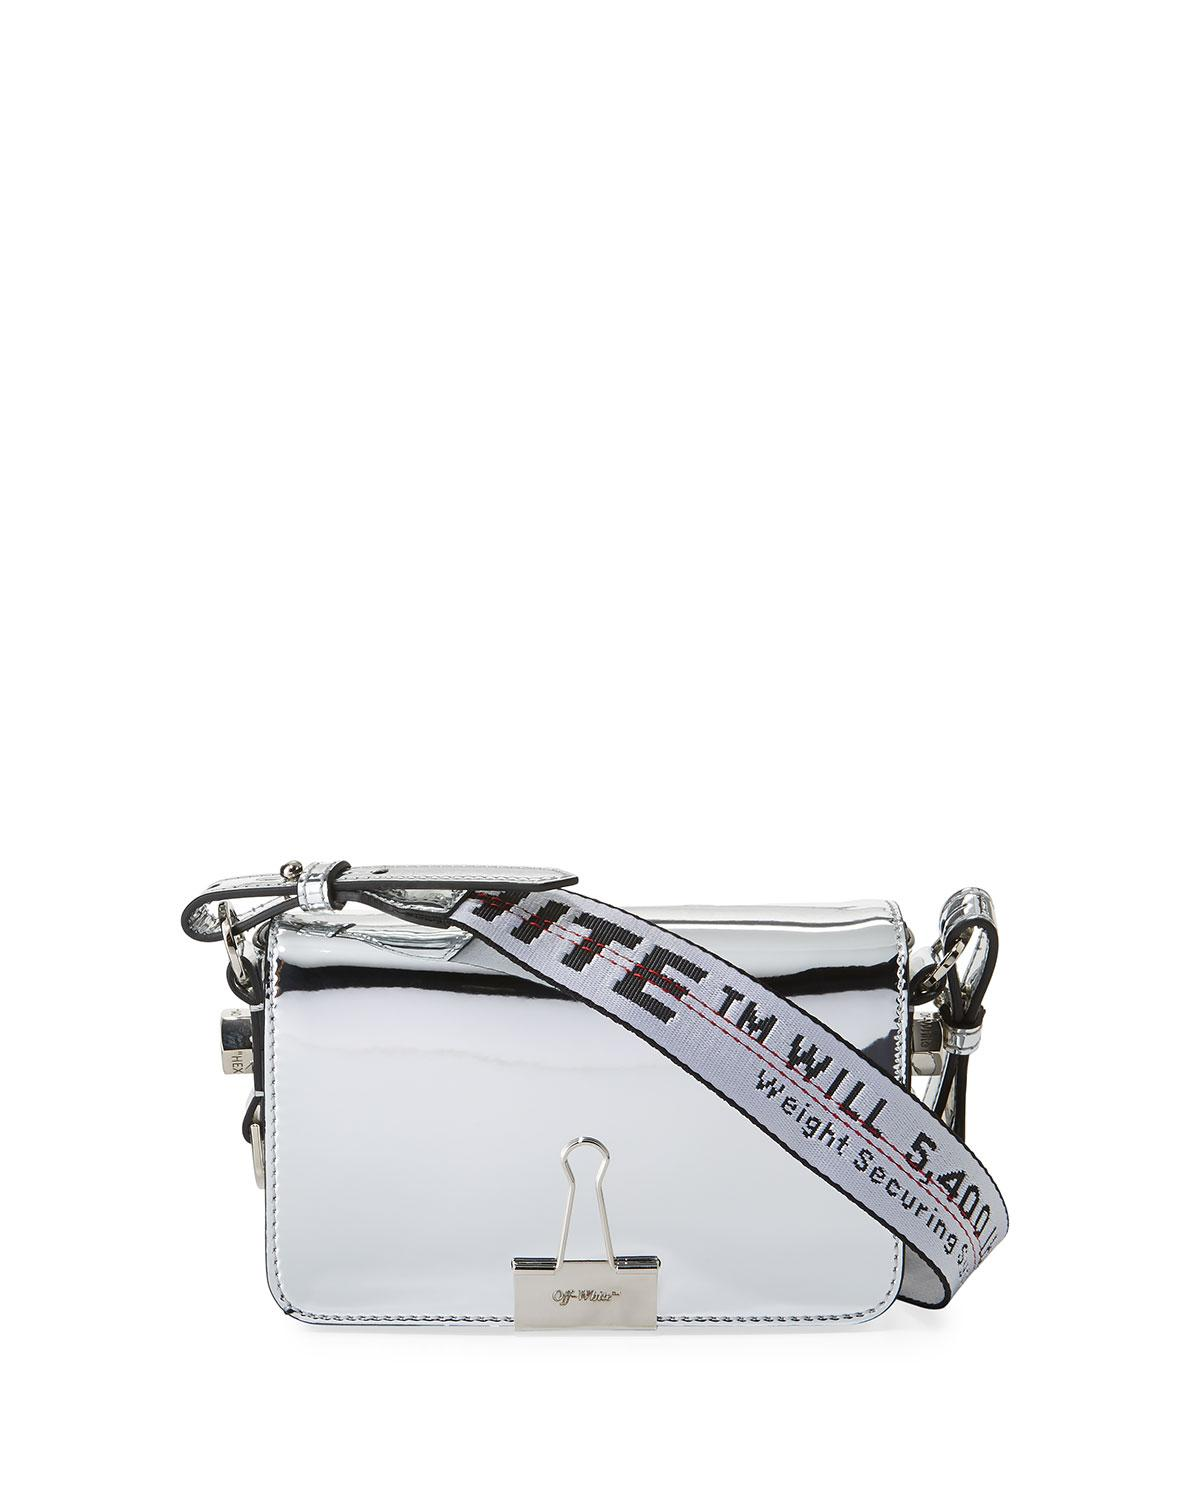 03d0816533c0f Off-White Mirror Mini Flap Crossbody Bag In Silver